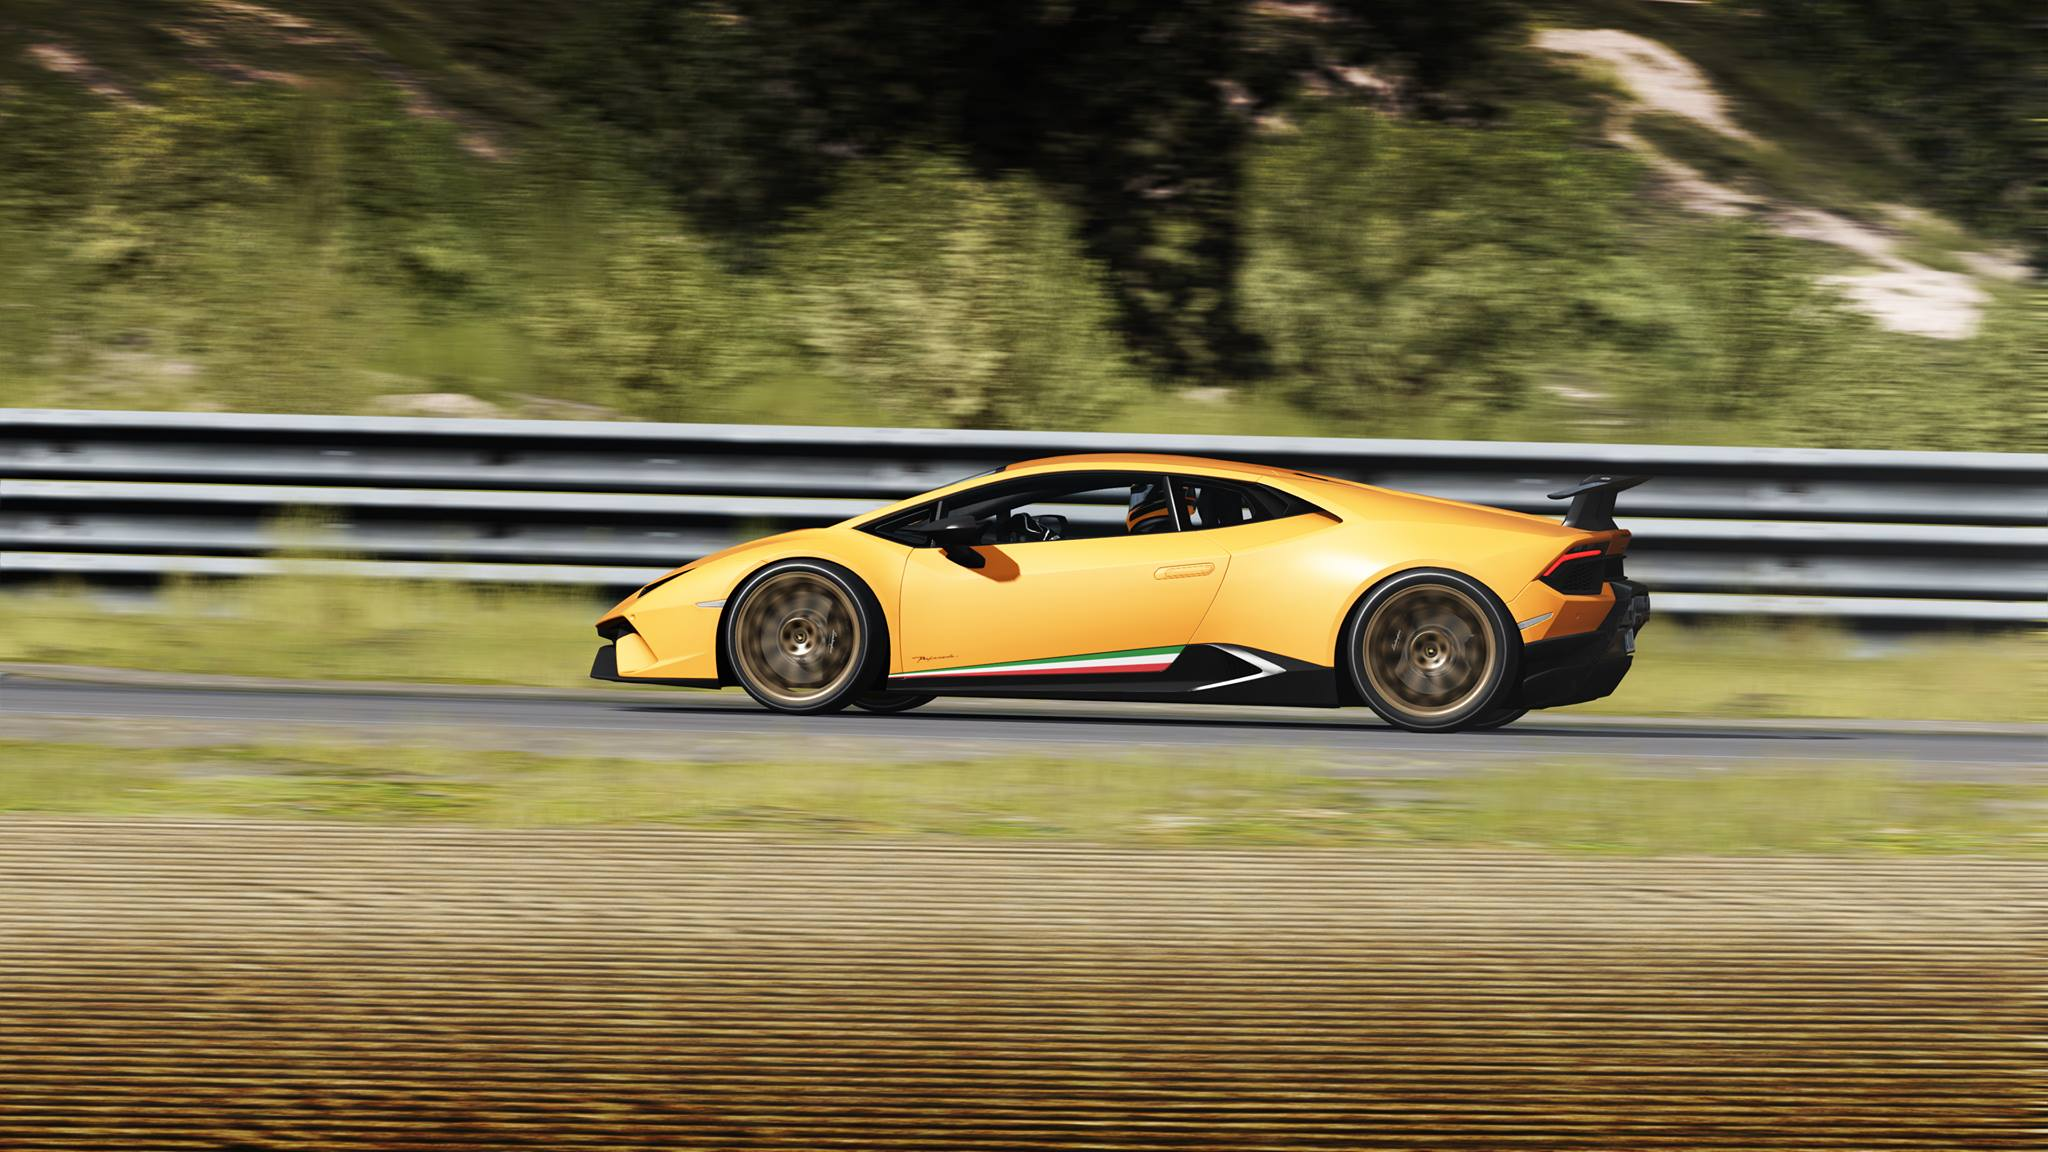 Huràcan Performante_5.jpg